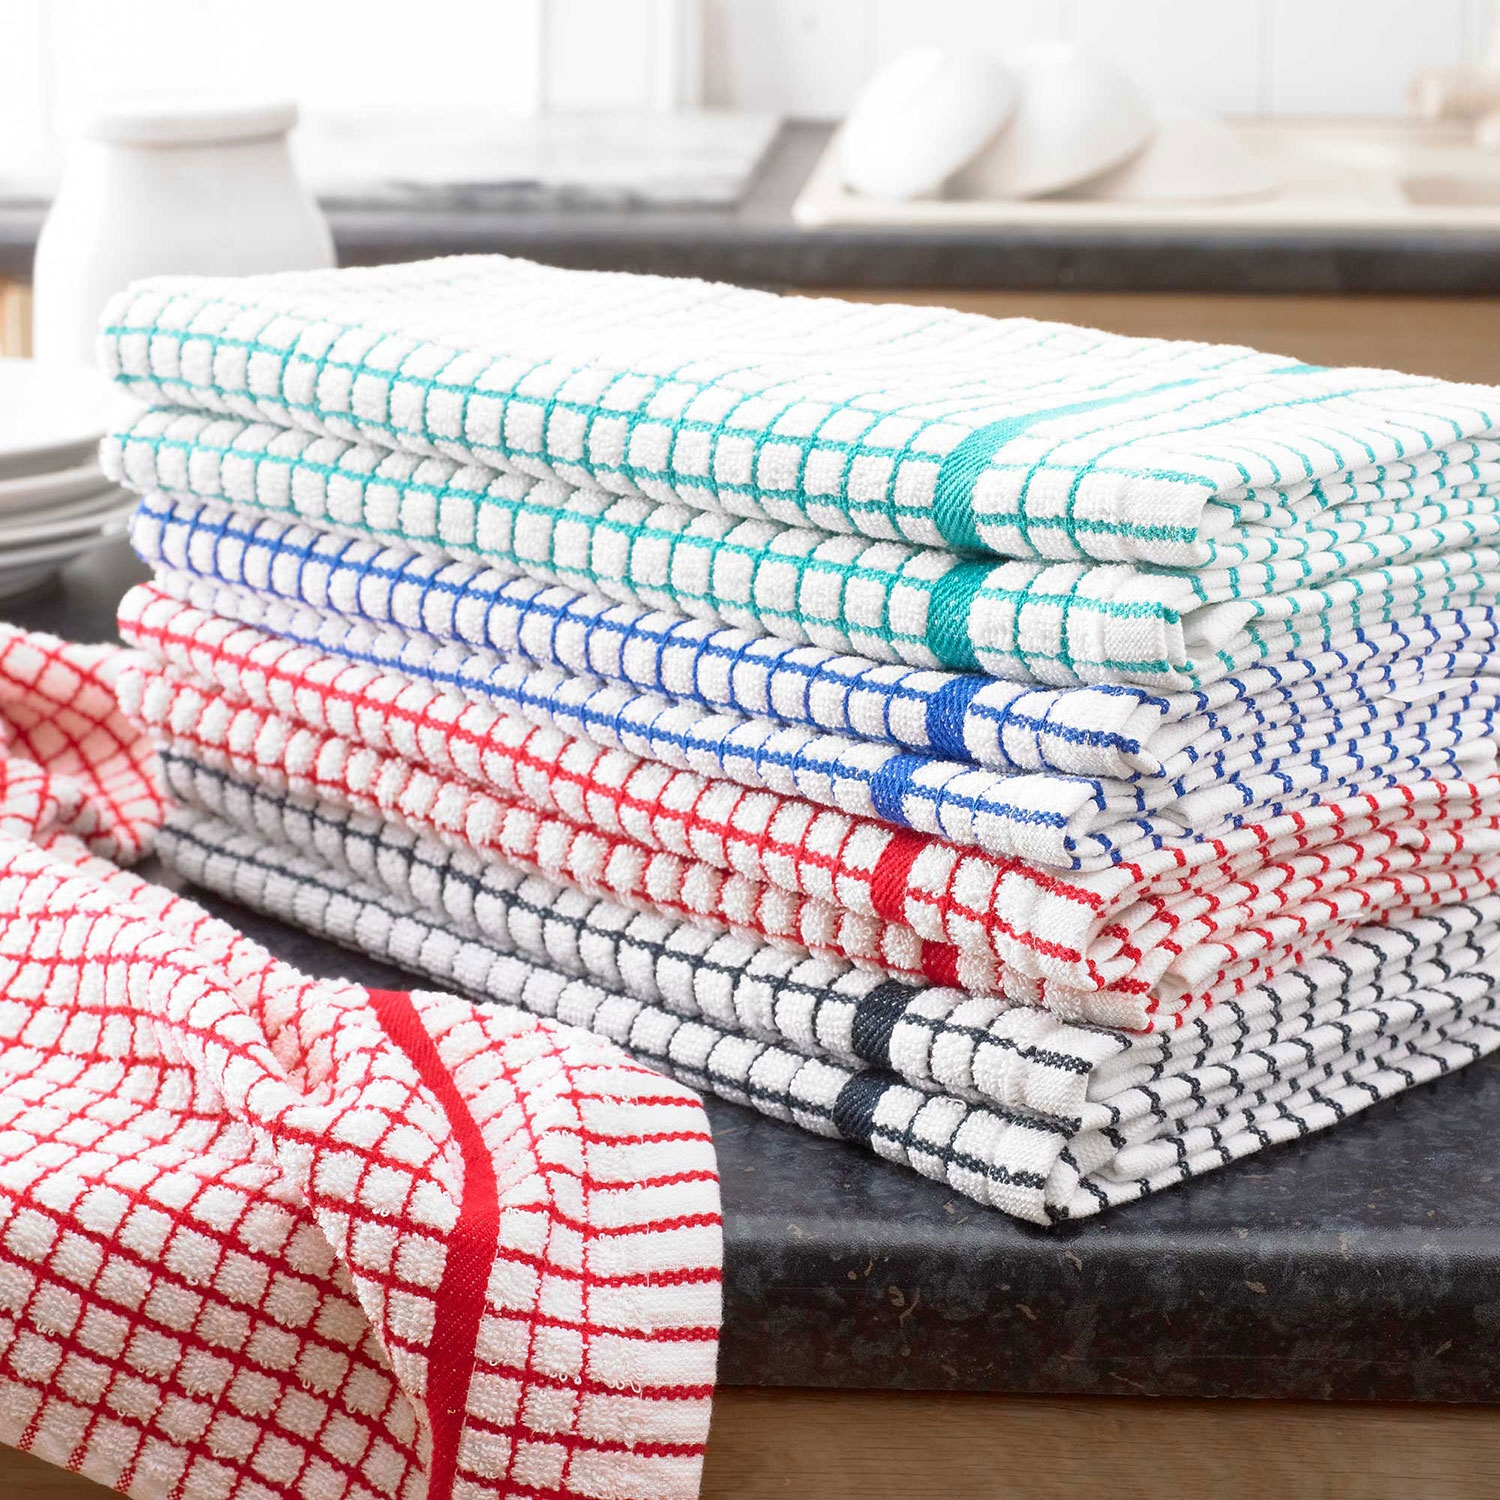 Kitchen-towels-all_3.jpg